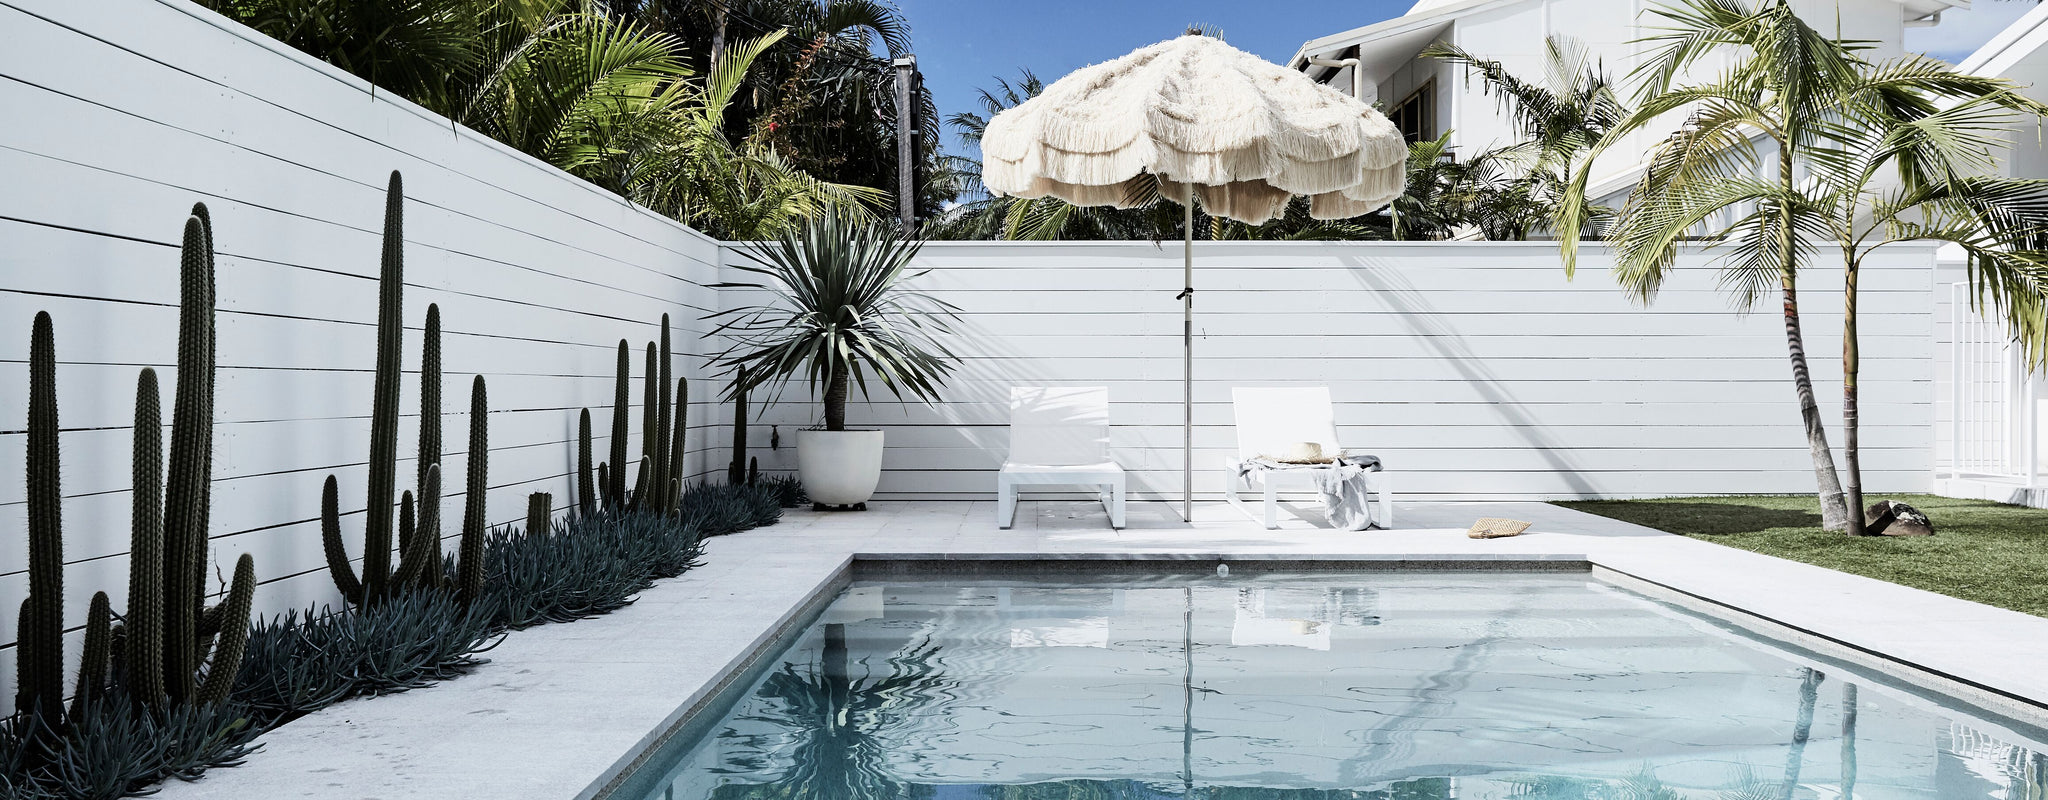 summer Byron Bay holiday accommodation relax insiders guide pool relaxation